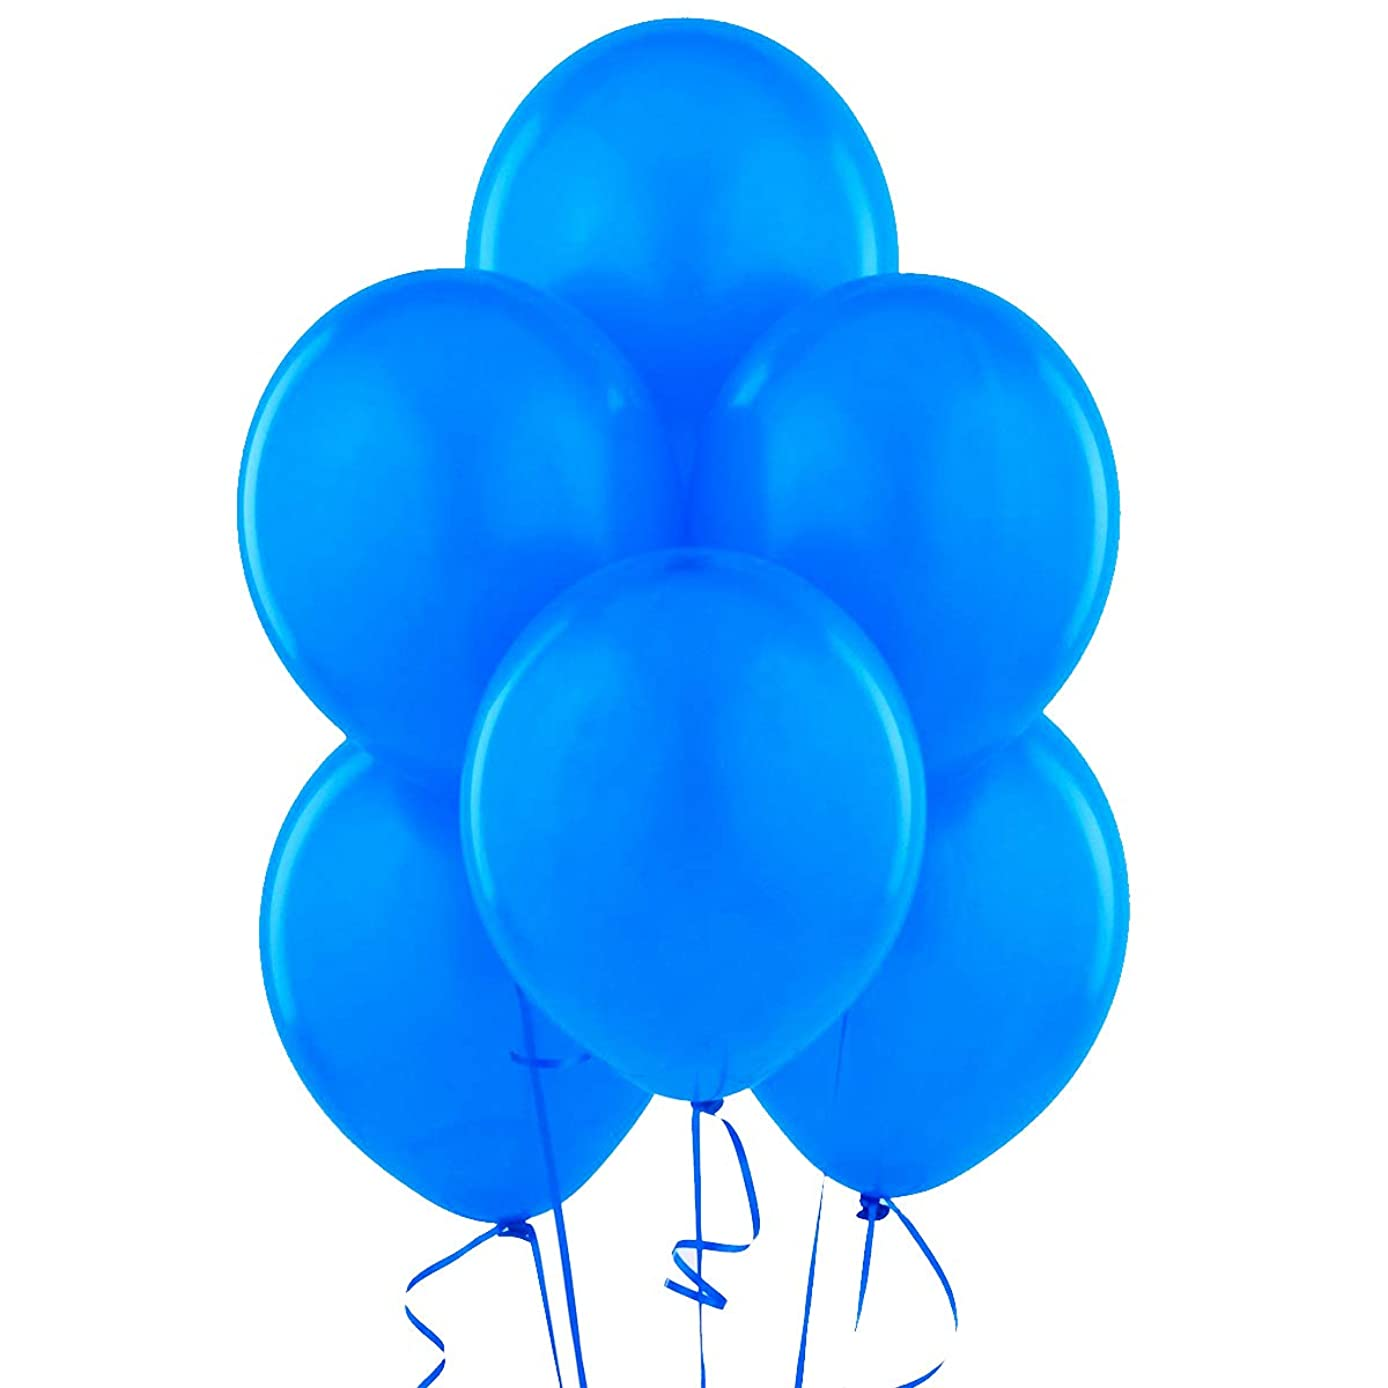 Blue 12 Inch Thickened Latex Balloons, Pack of 24, Premium Helium Quality for Wedding Bridal Baby Shower Birthday Party Decorations Supplies Ballon Baloon Thinken